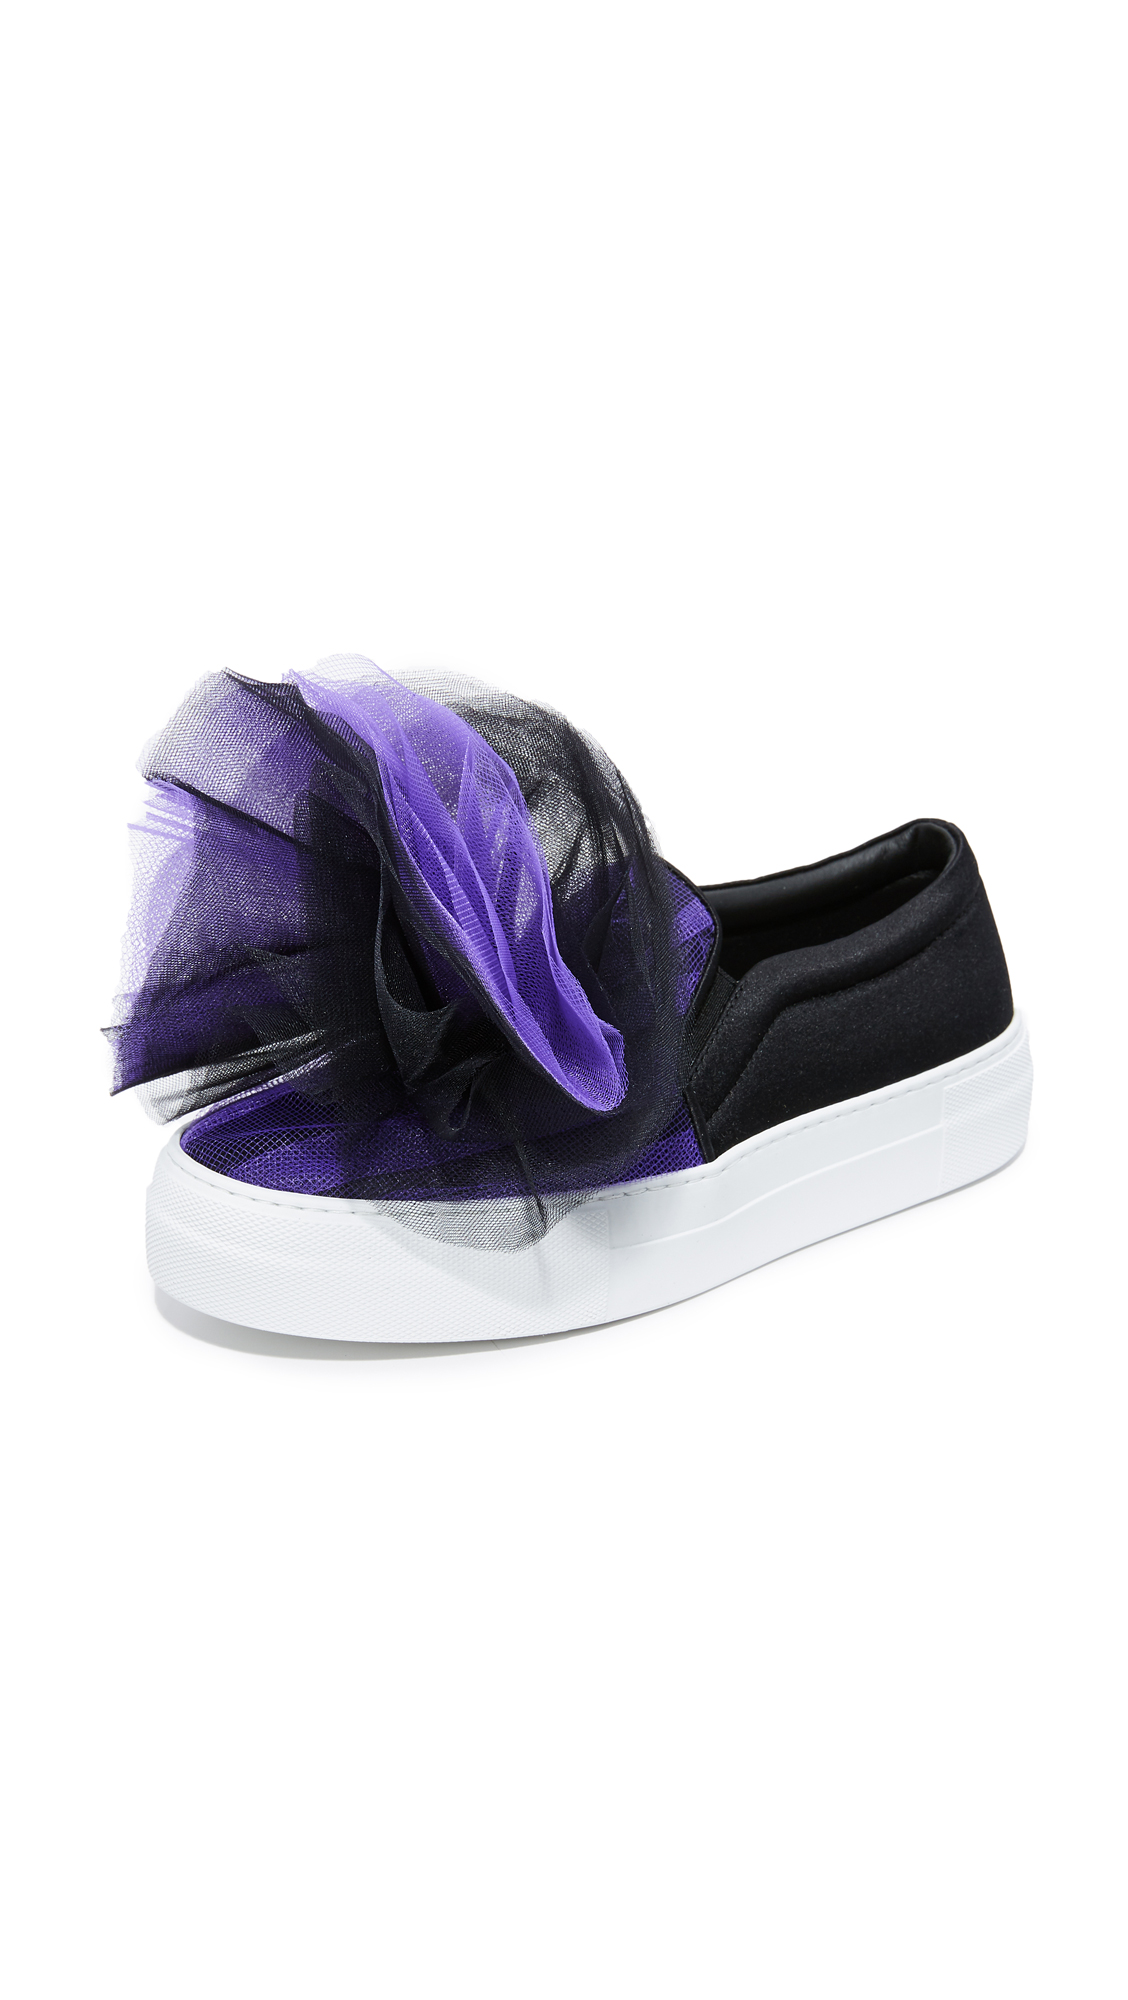 Joshua Sanders Tulle Sneakers - Black/Purple